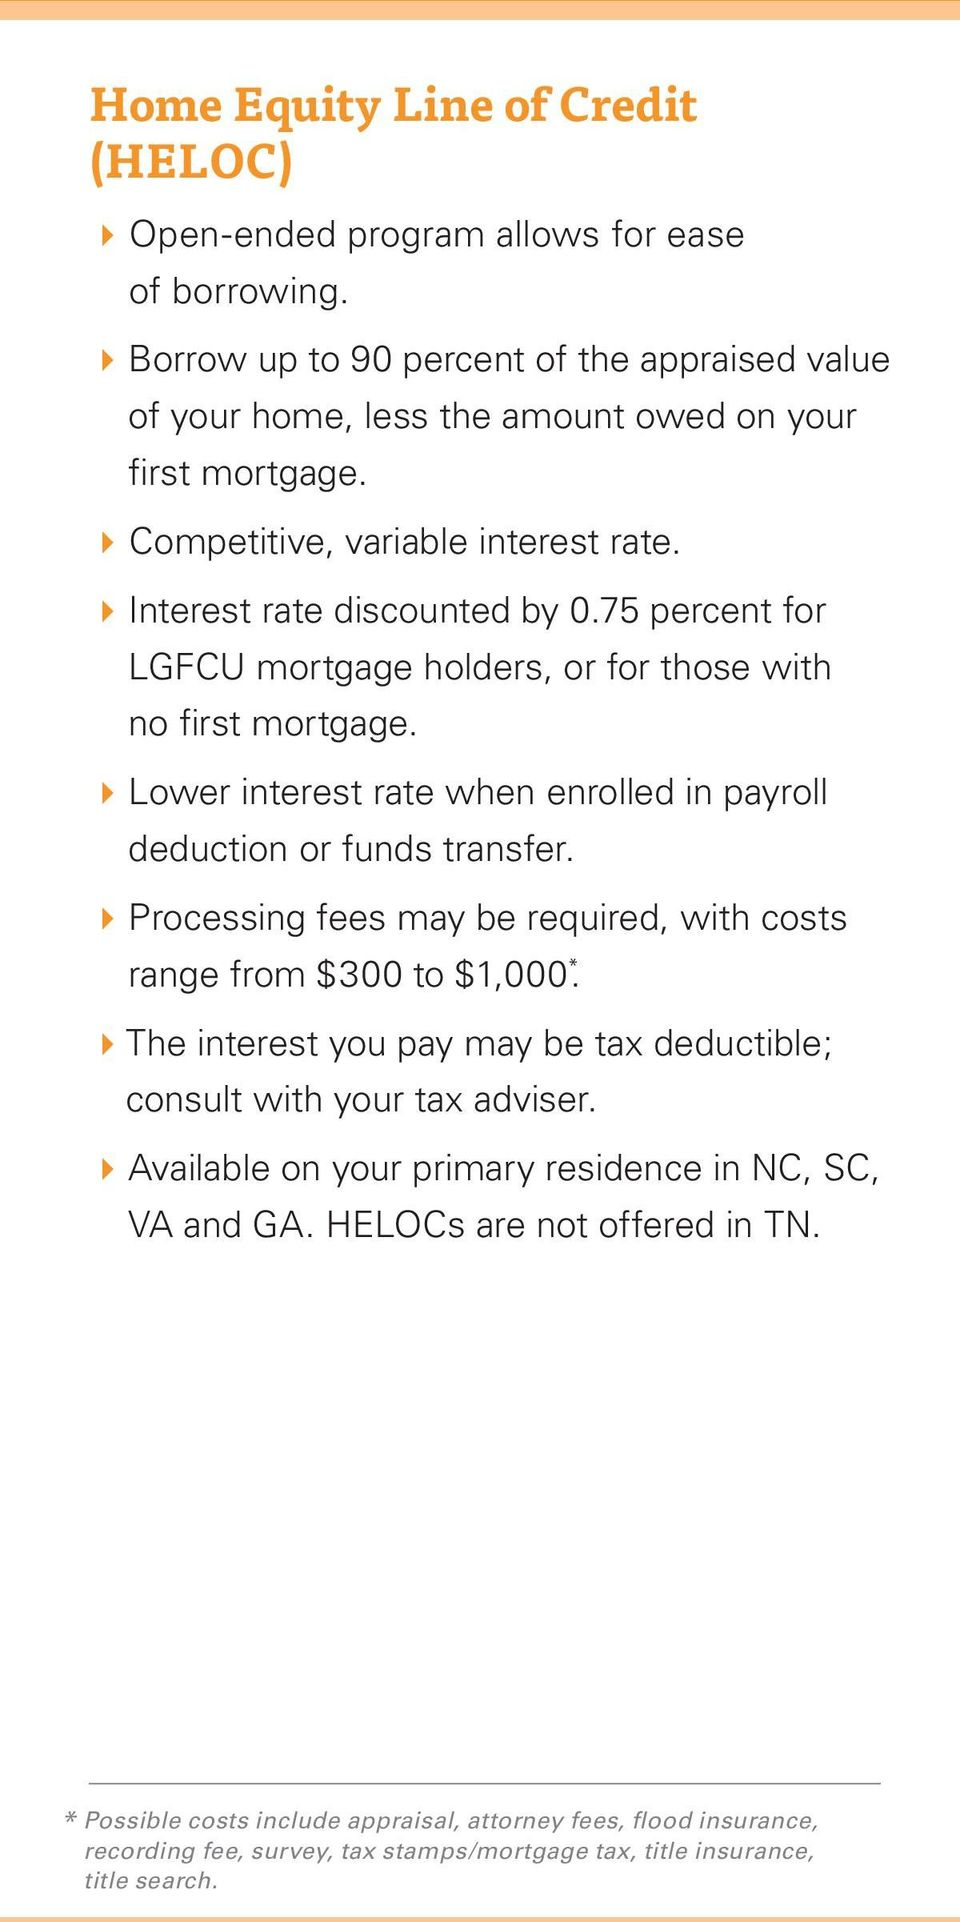 4Lower interest rate when enrolled in payroll deduction or funds transfer. 4Processing fees may be required, with costs range from $300 to $1,000 *.